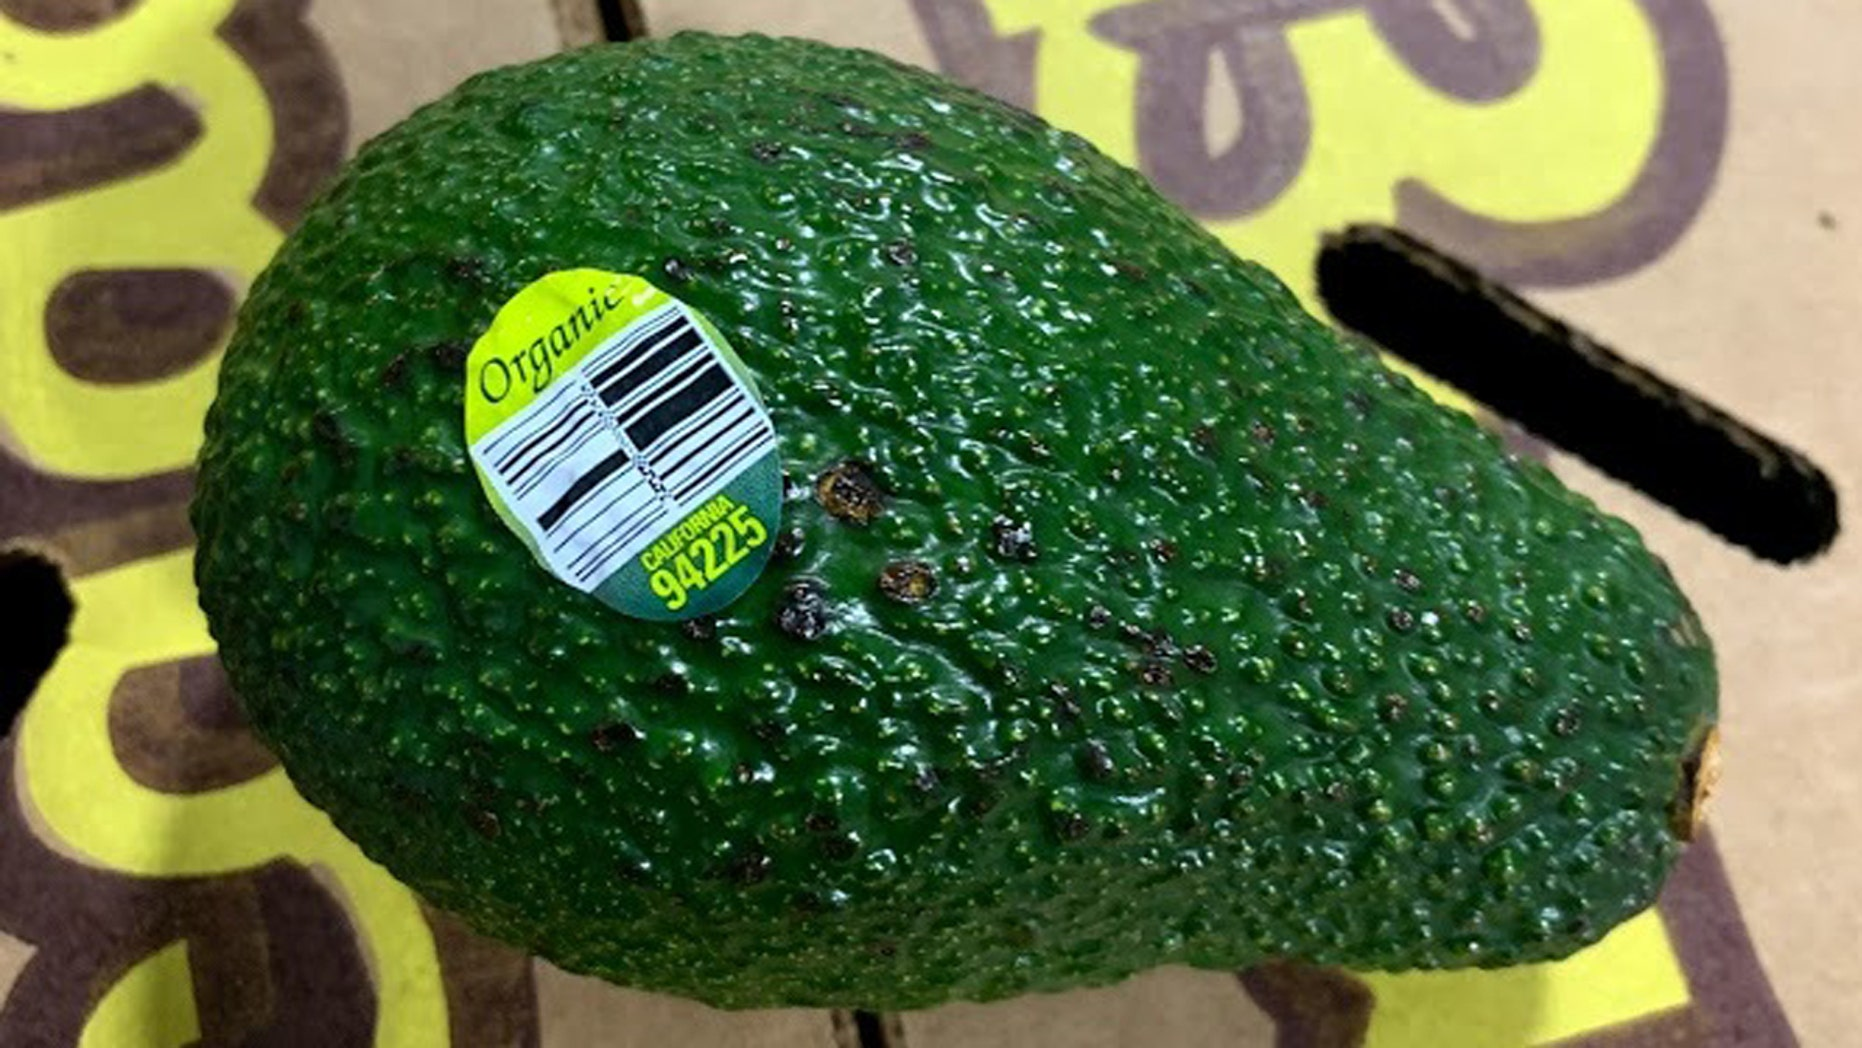 The voluntary recall of Henry Avocado Corporation is voluntarily recalling large Avocado populations sold by California in retail stores in 6 states on concerns that they may have been infected with listeria.